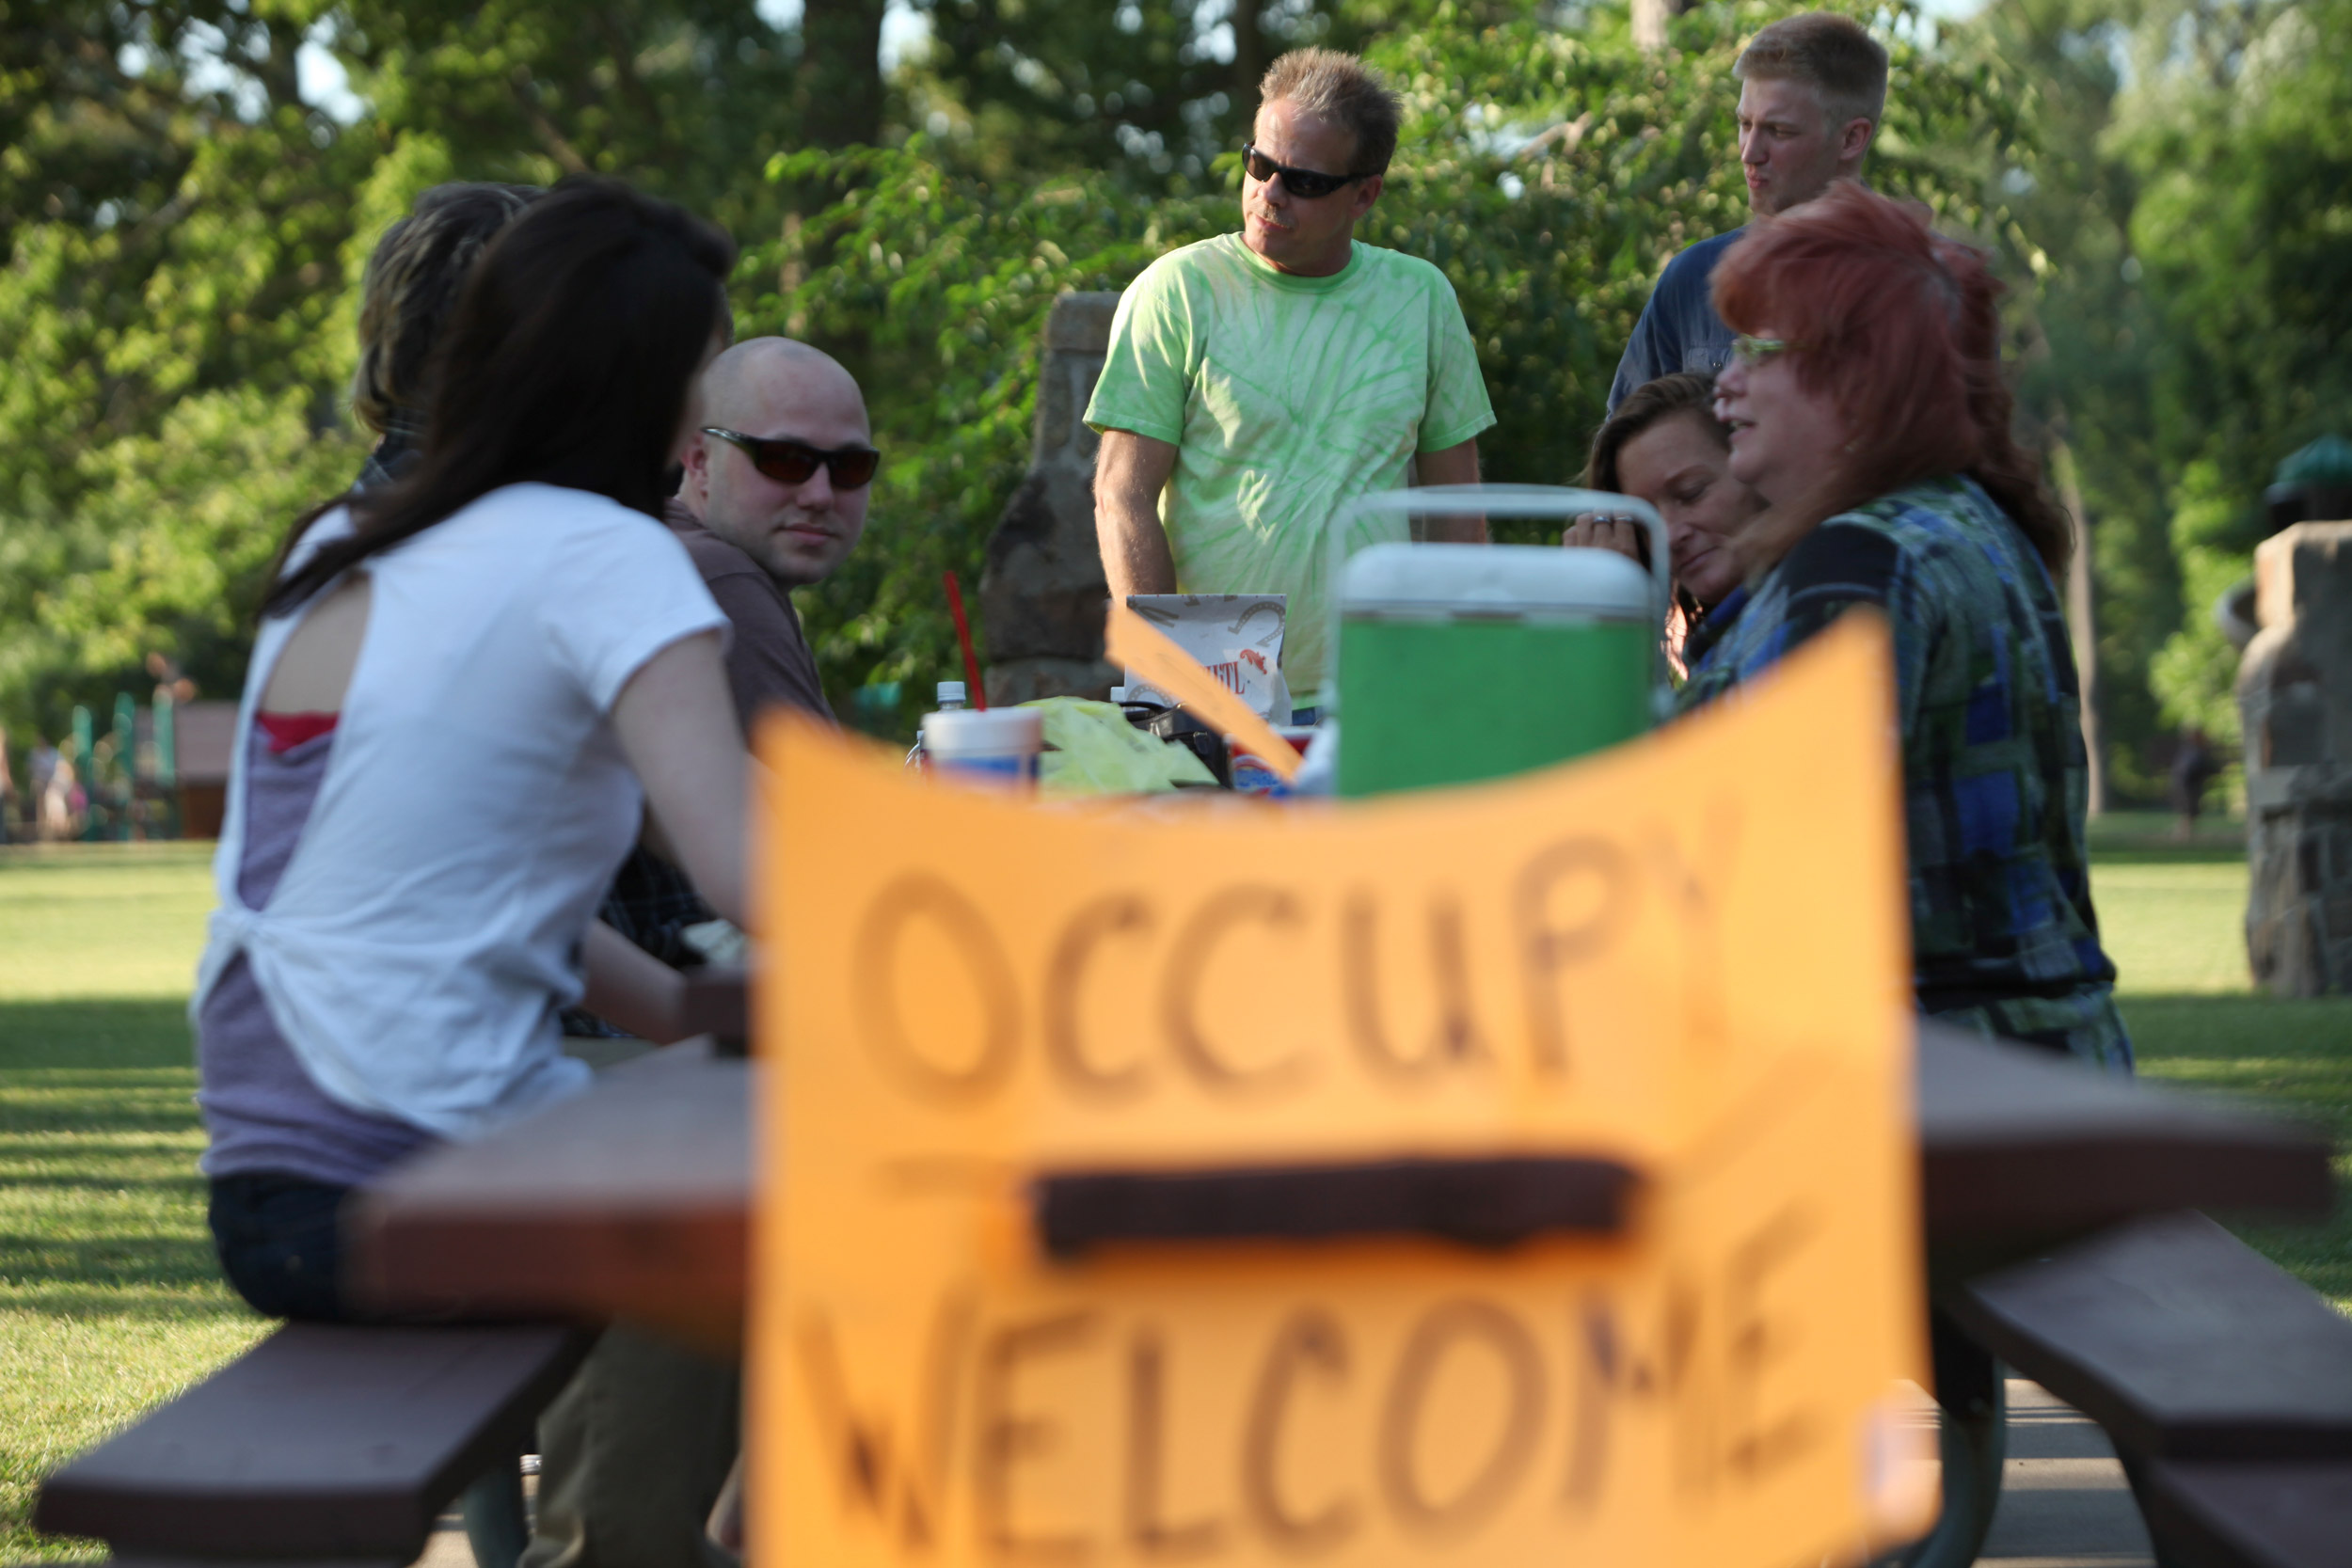 Scott Youngkin (in green) is new to protesting, but already one of the leaders of the Occupy 417 movement.